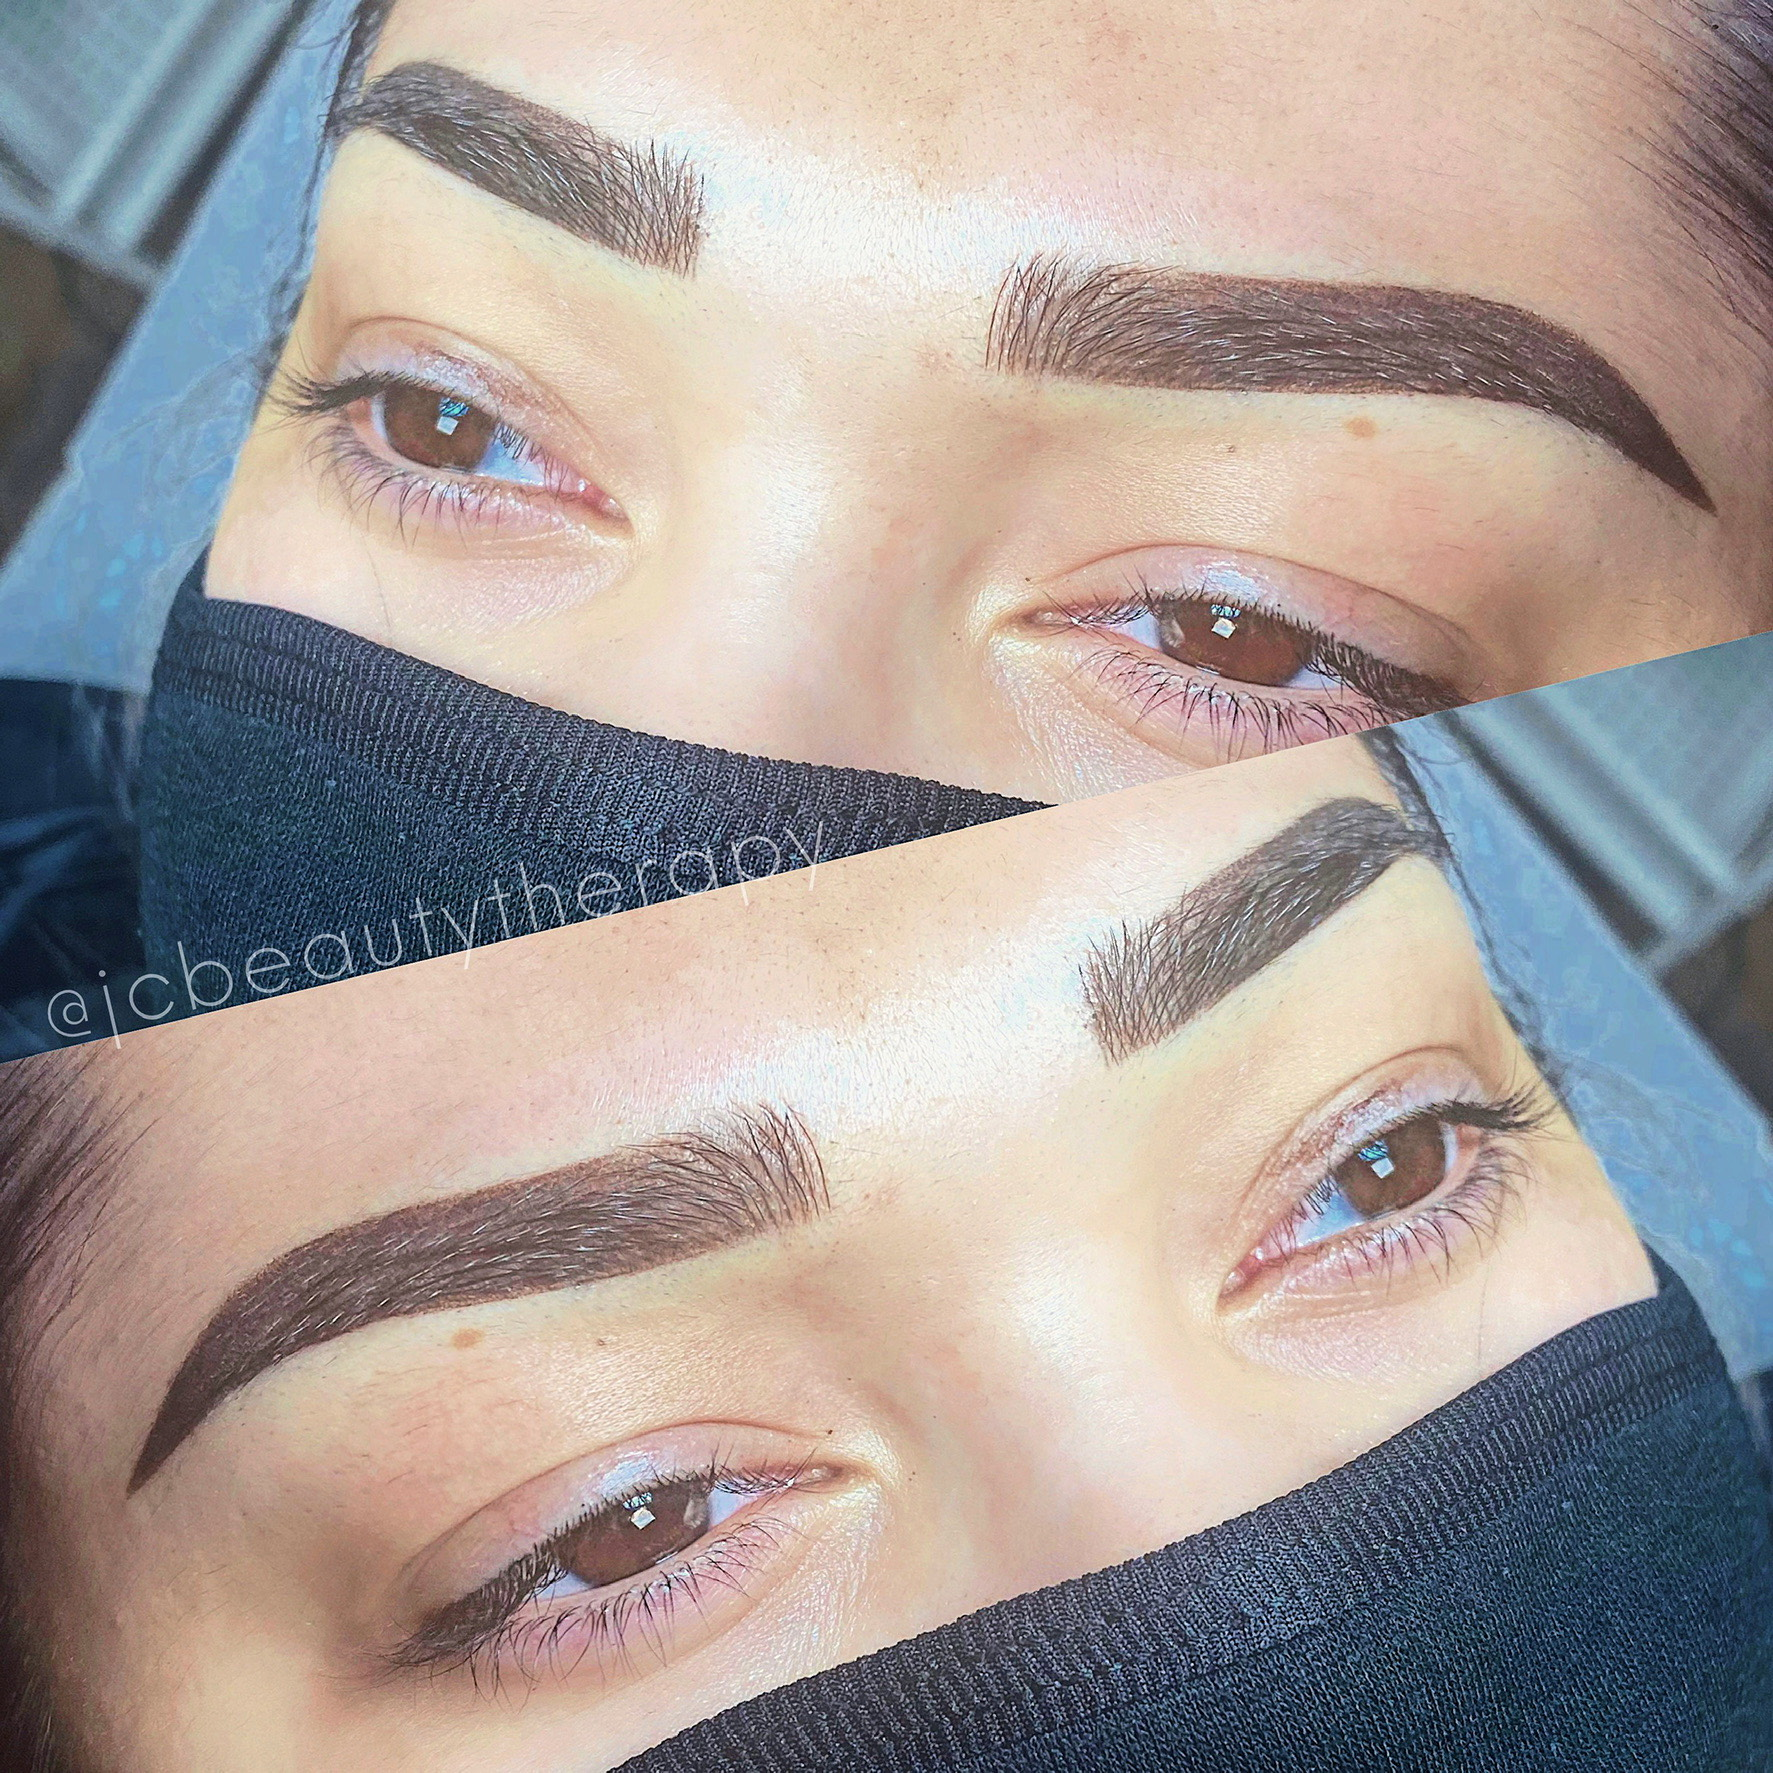 before and after view of brow work